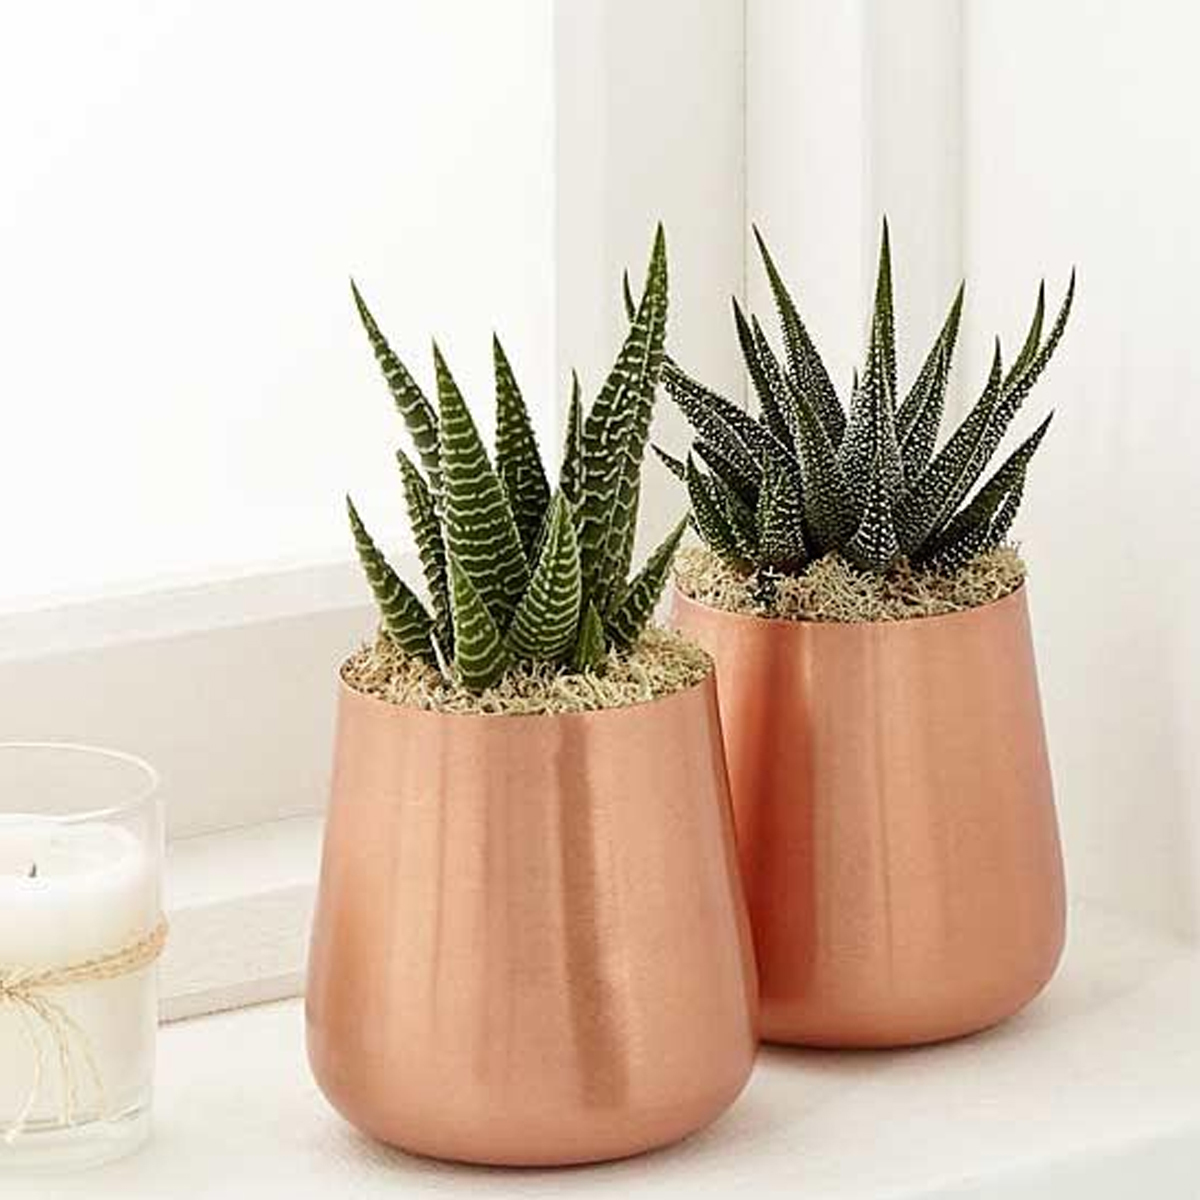 Better Homes and Gardens Gorgeous Glow Succulent Plant Duo photo